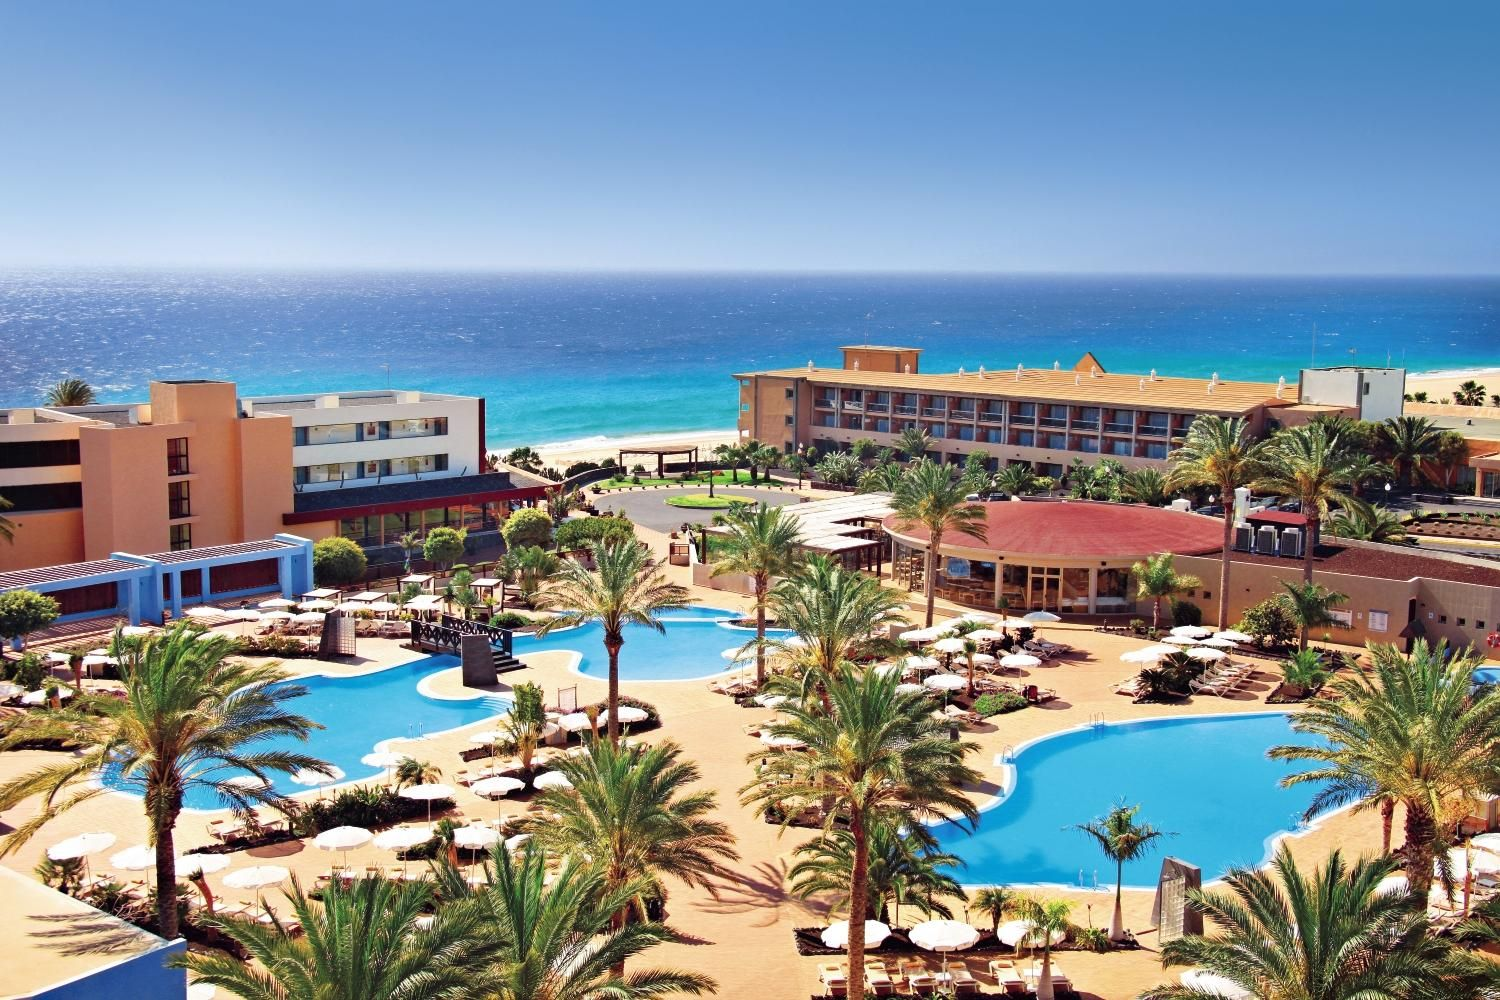 Iberostar Playa Gaviotas Park - 4* pas cher photo 1